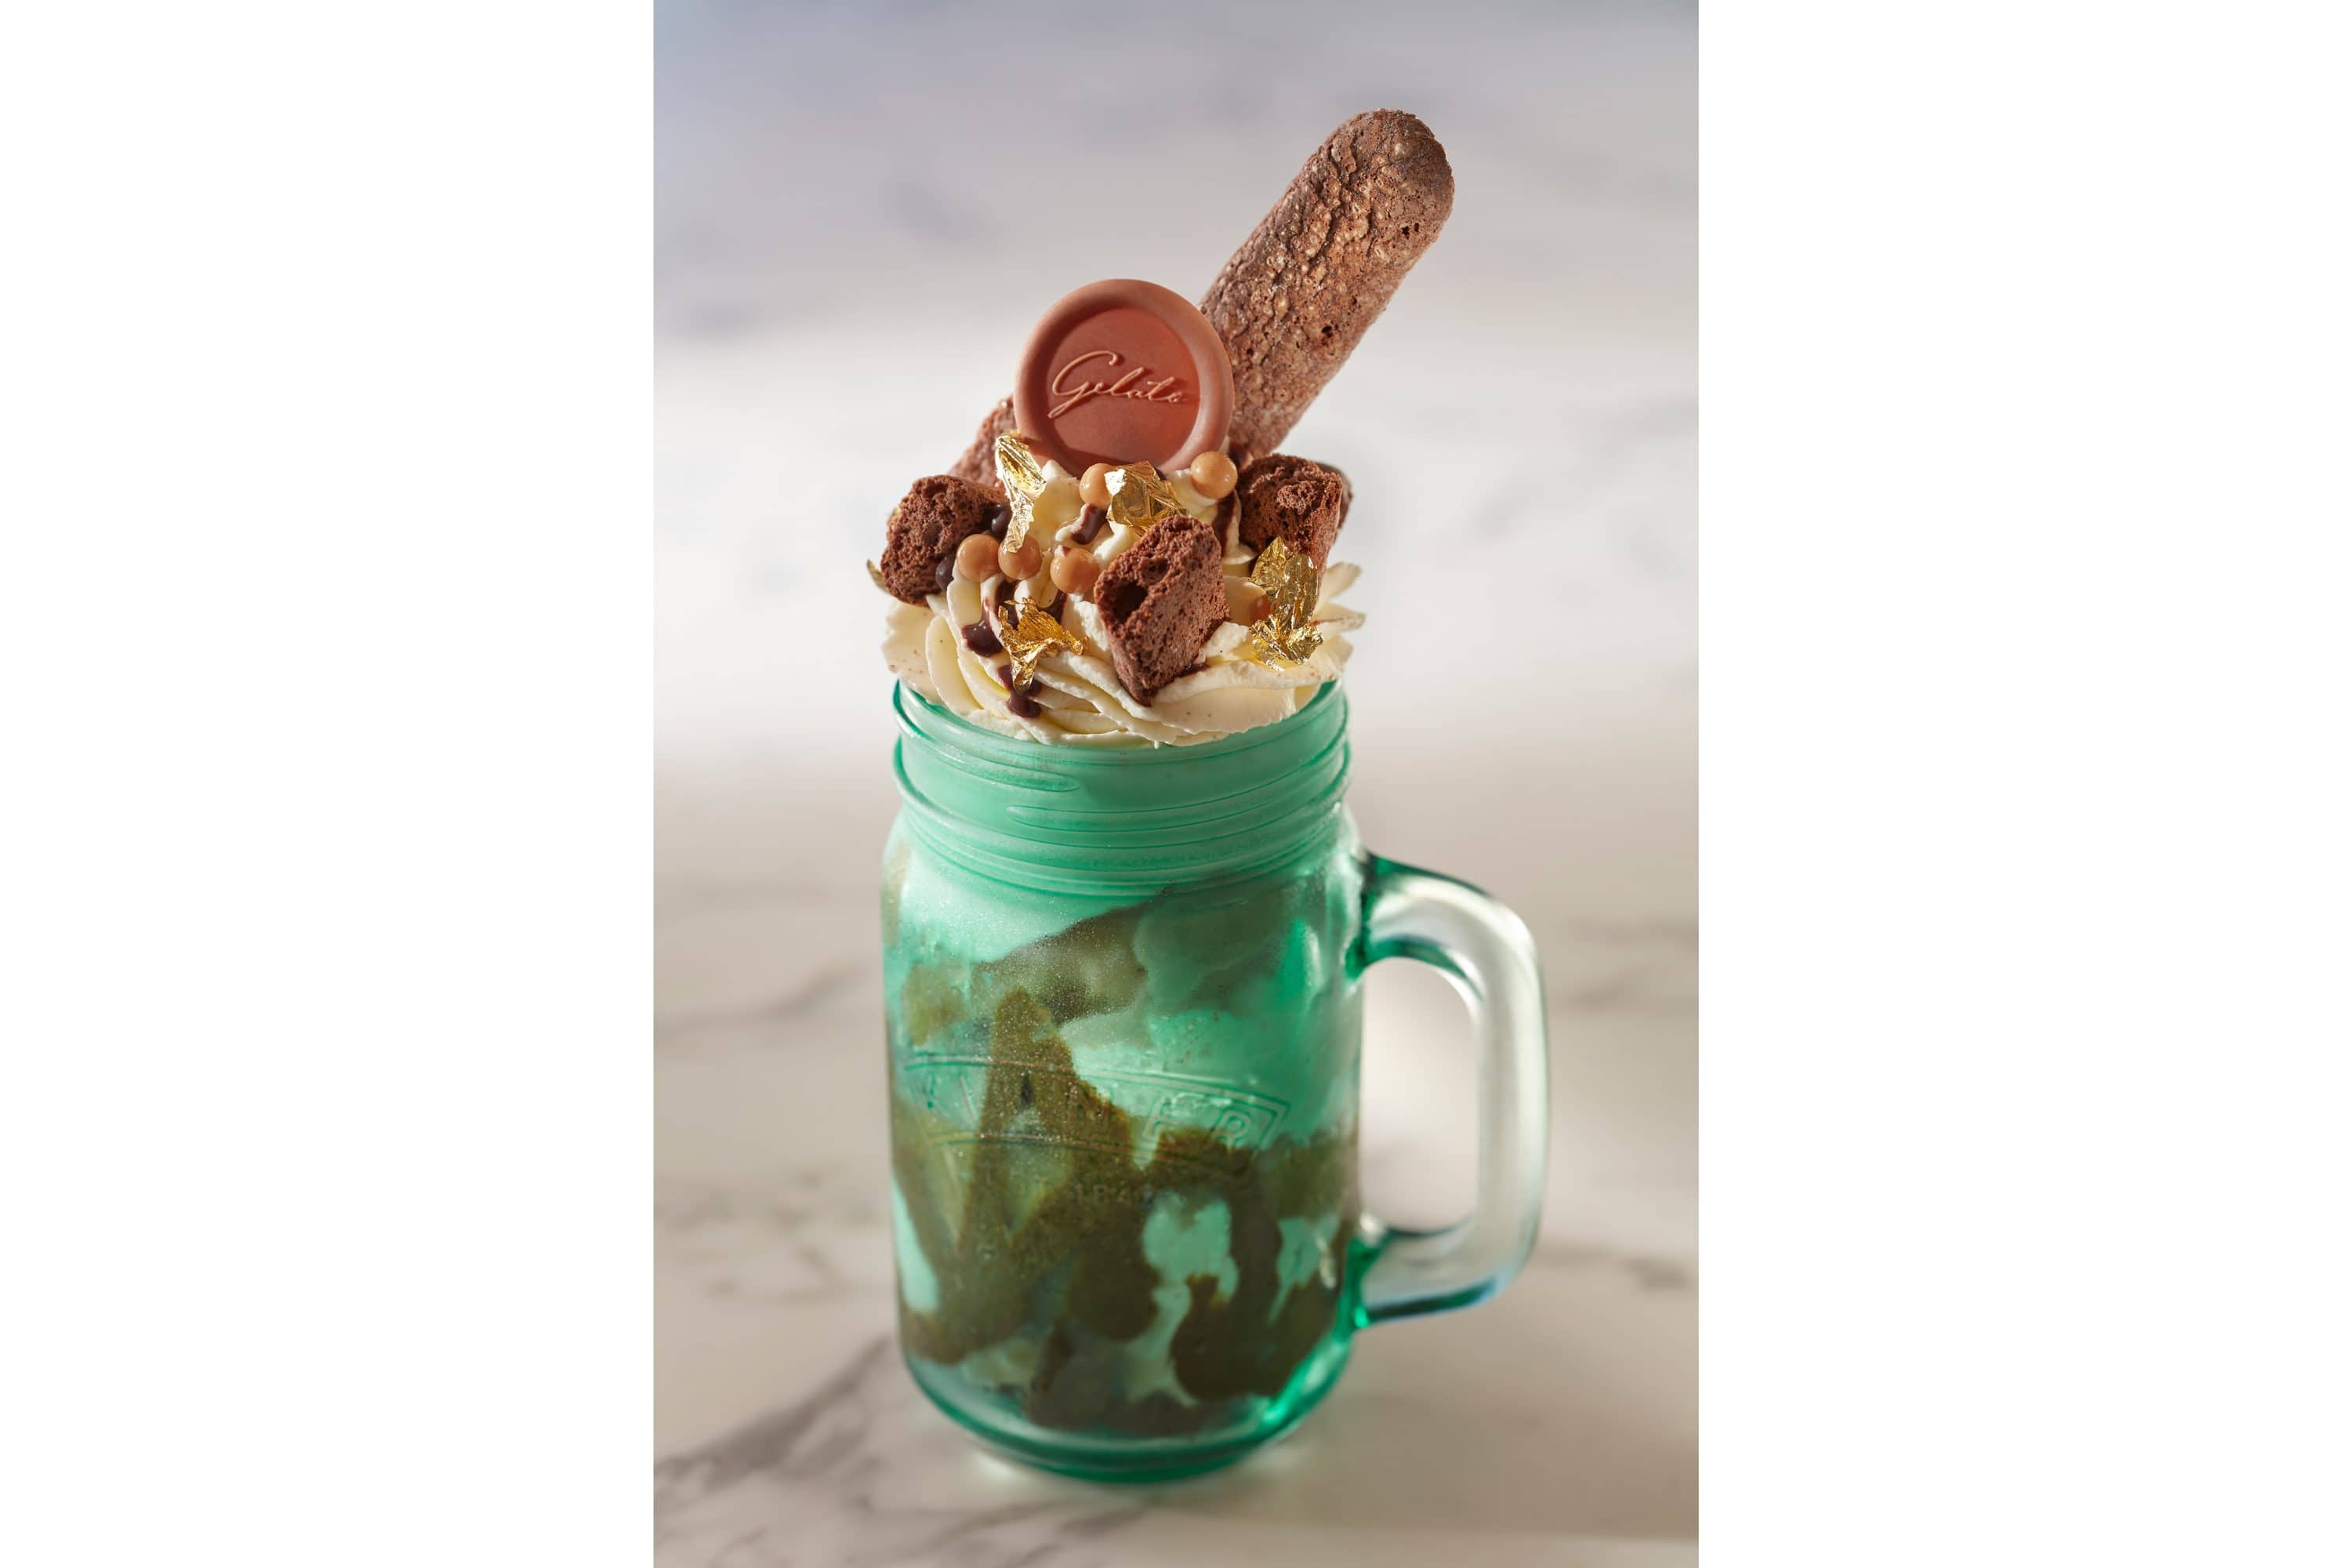 Messy Mug ice cream dessert in a green glass mug